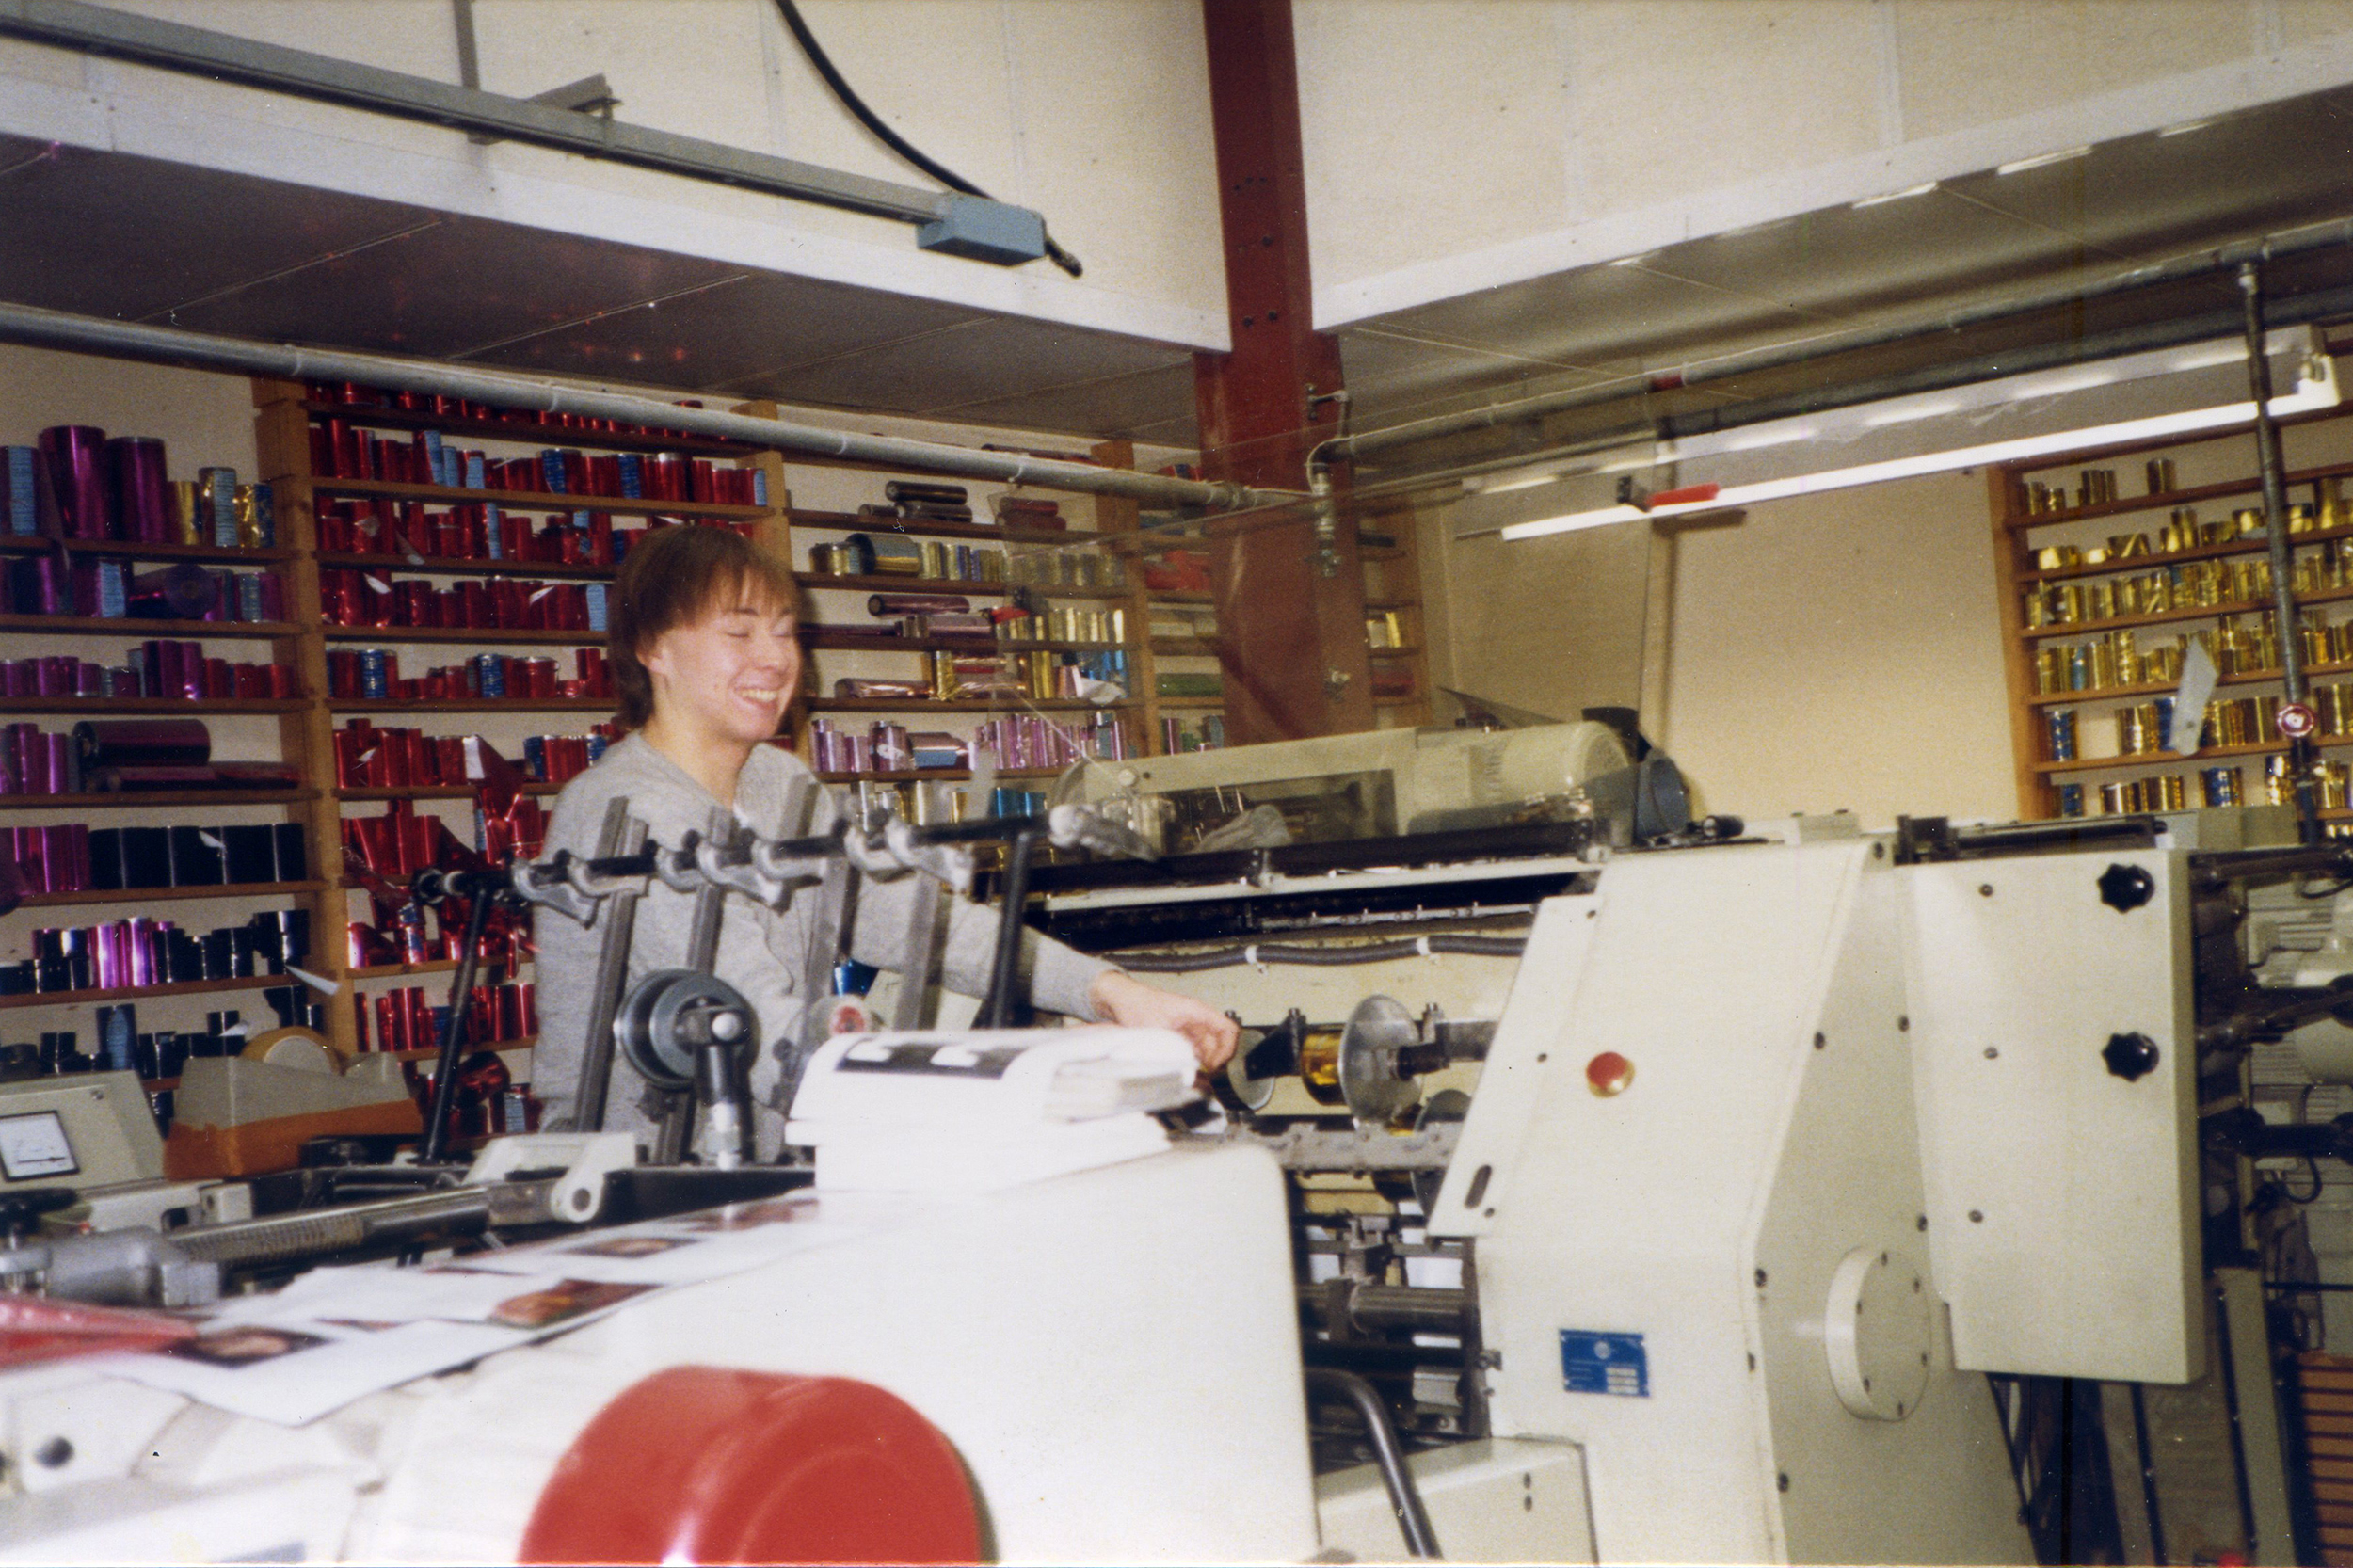 Man with foiling and printing equipment